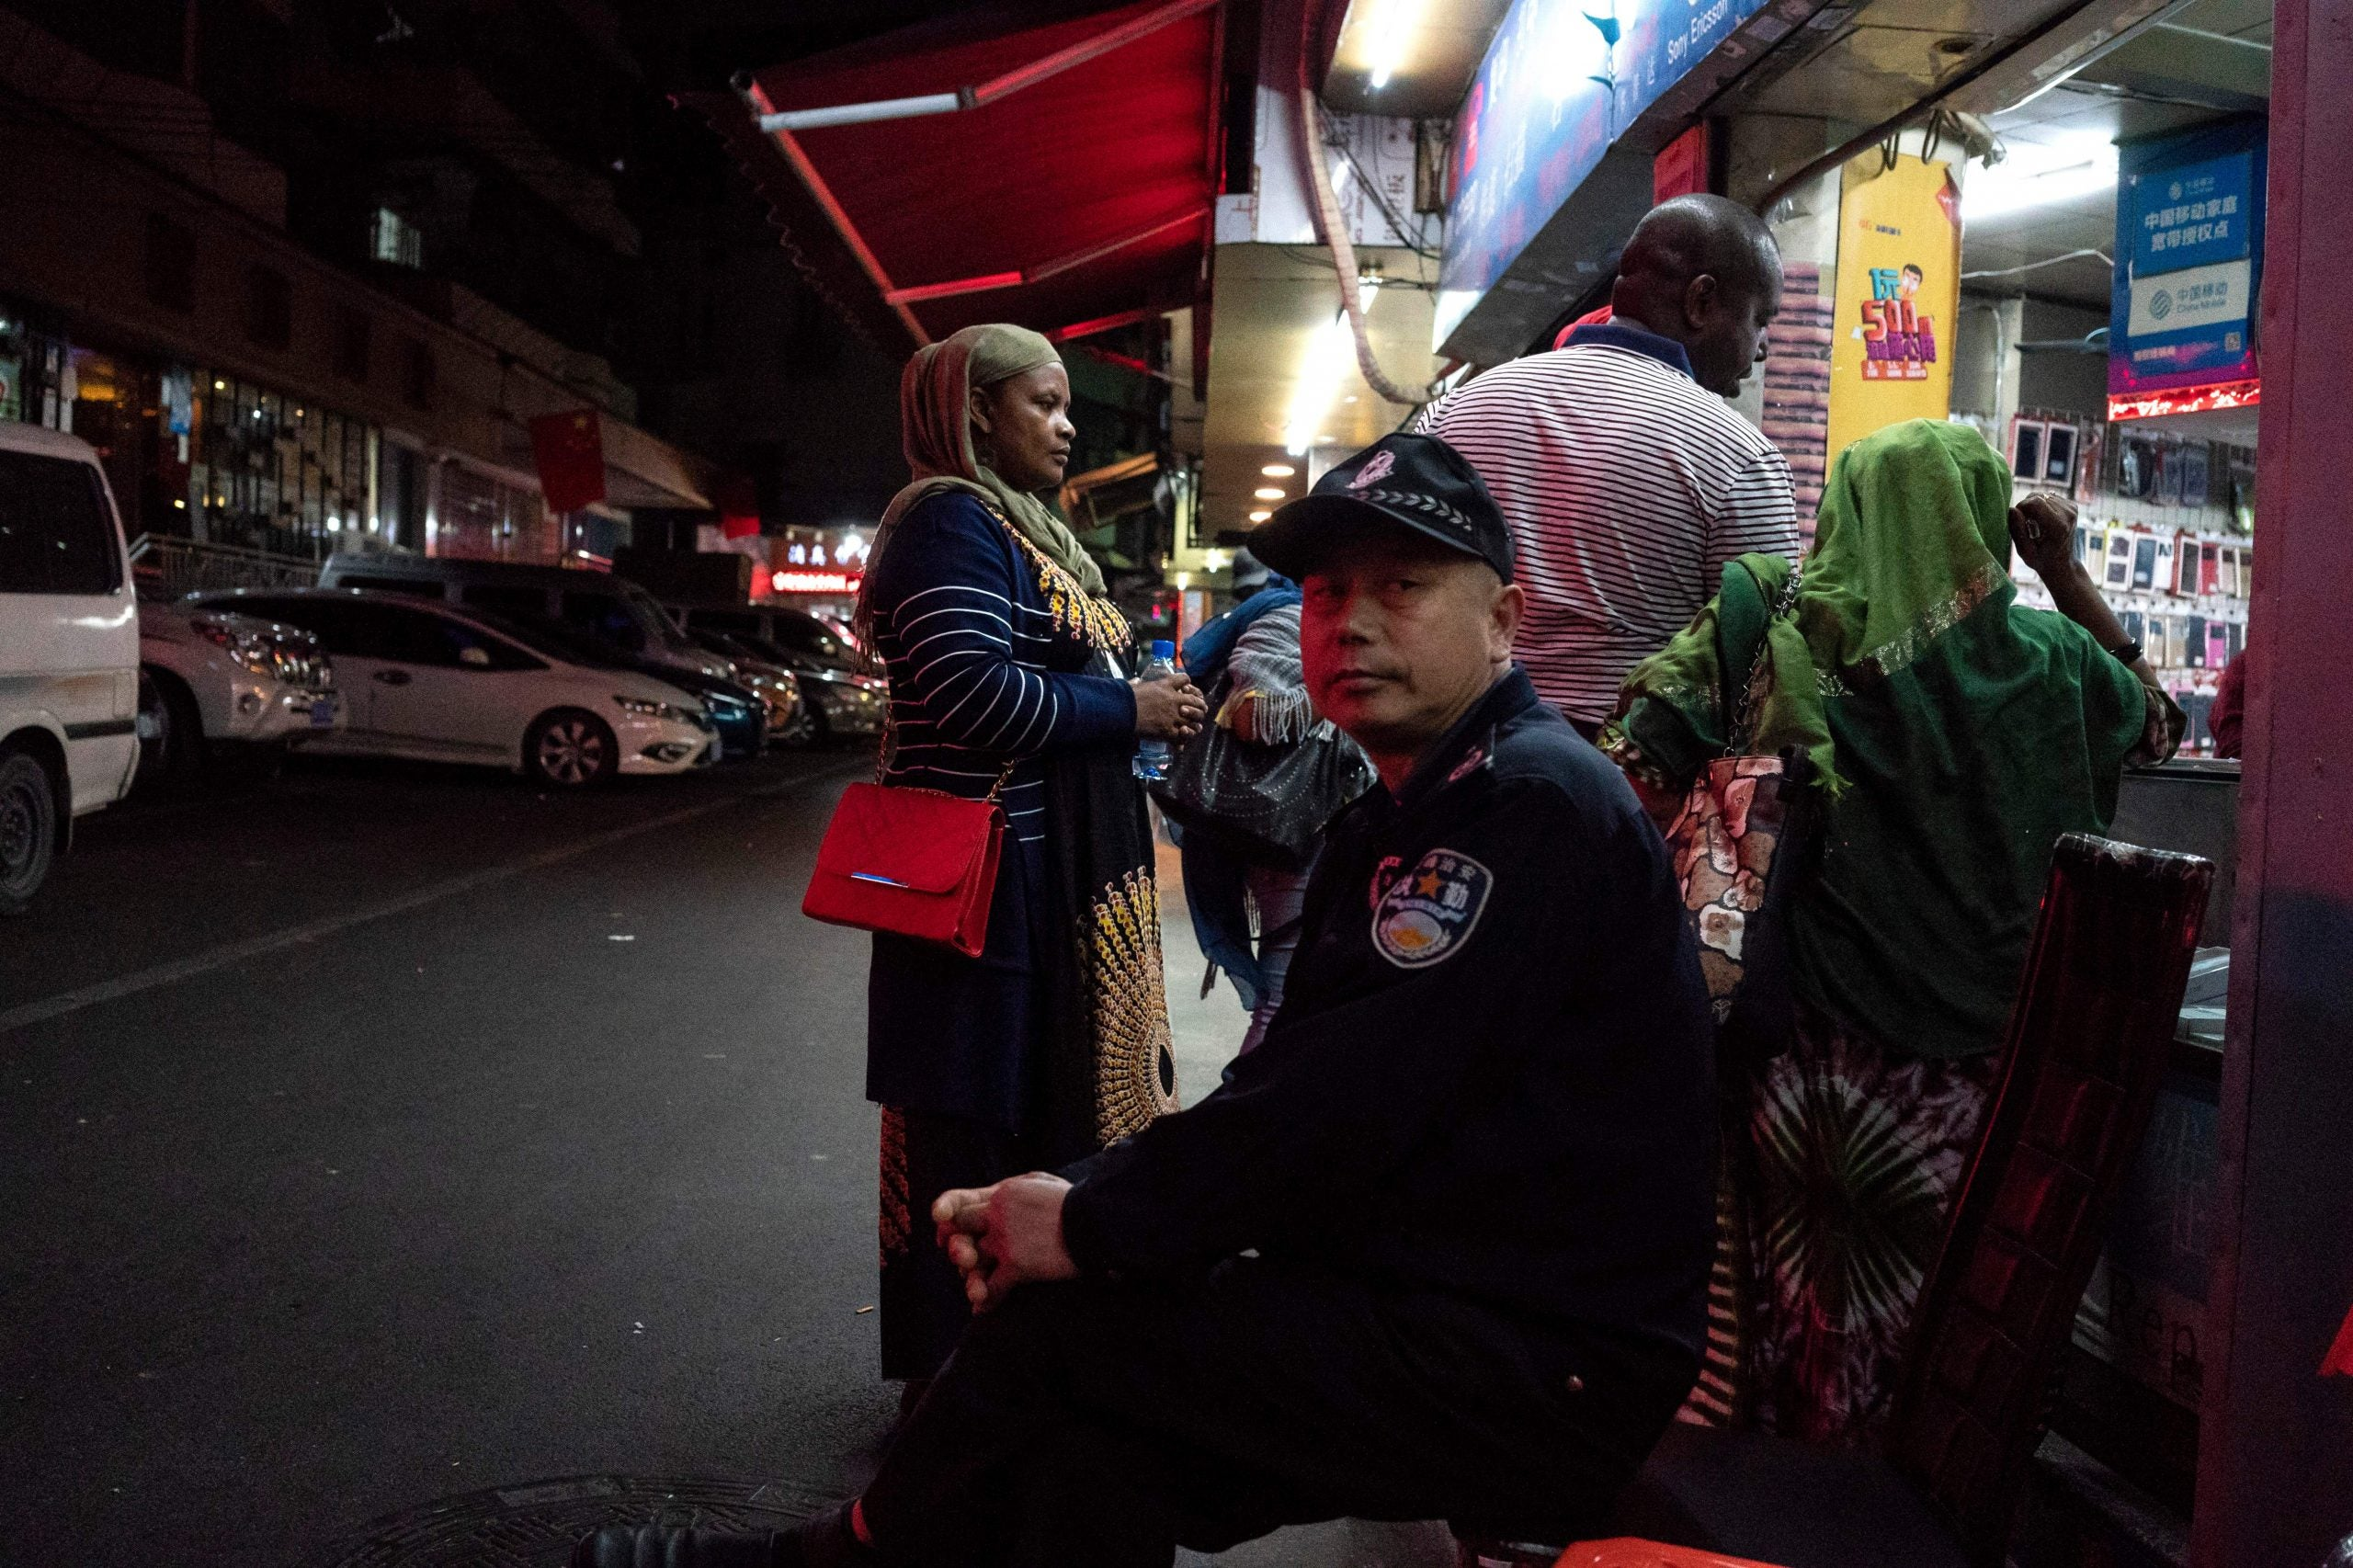 Chinese police officer monitors African patrons in Guangzhou, China